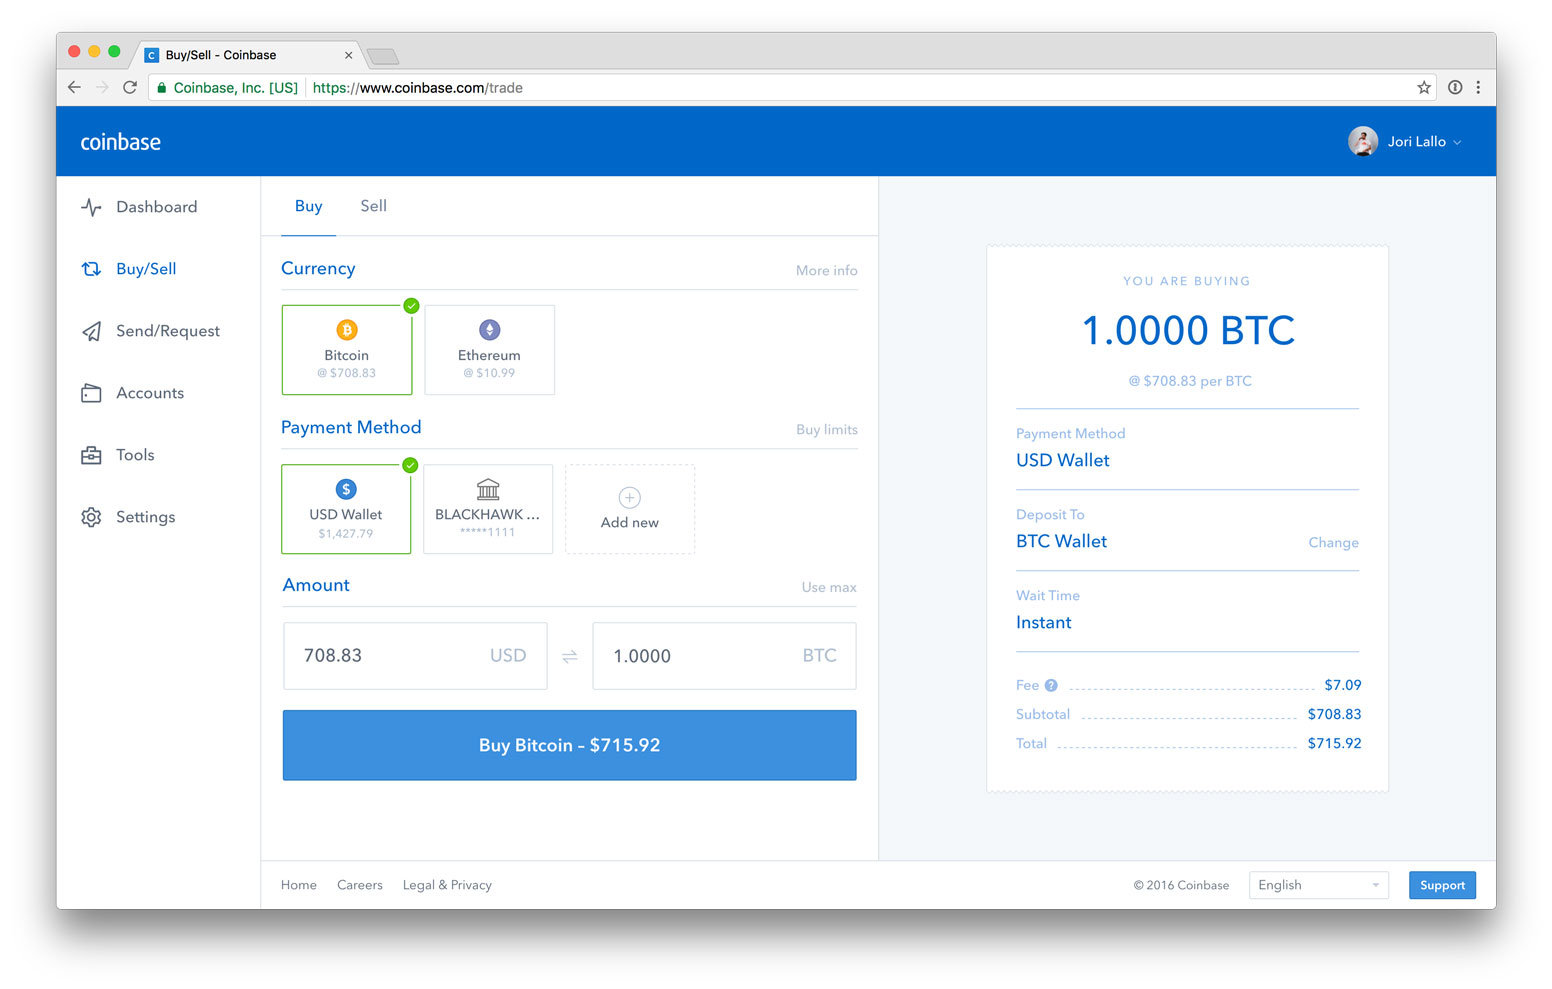 New Coinbase buy/sell page